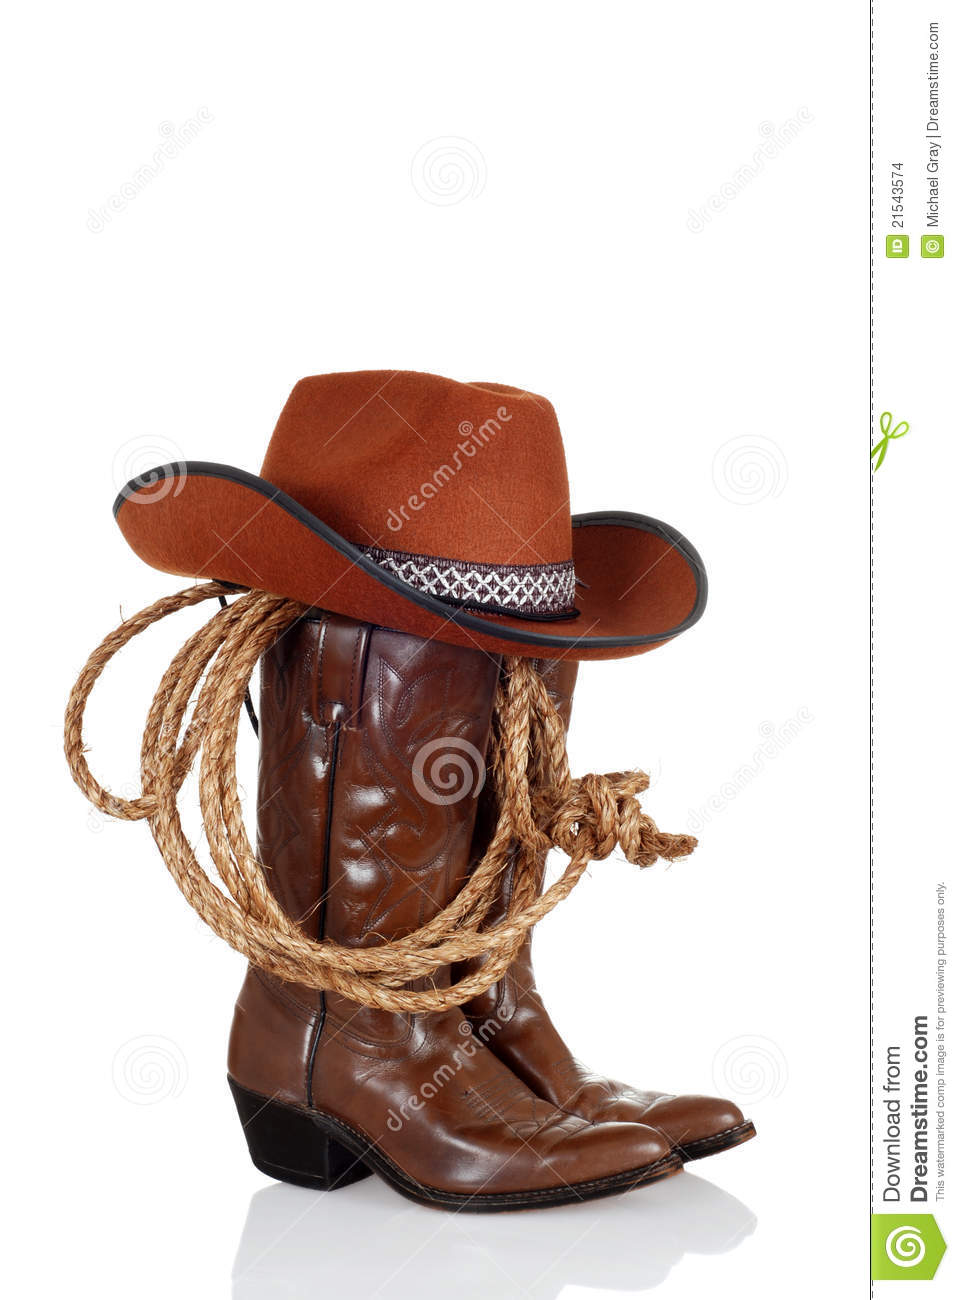 More similar stock images of ` Cowboy boots with hat and a lasso `